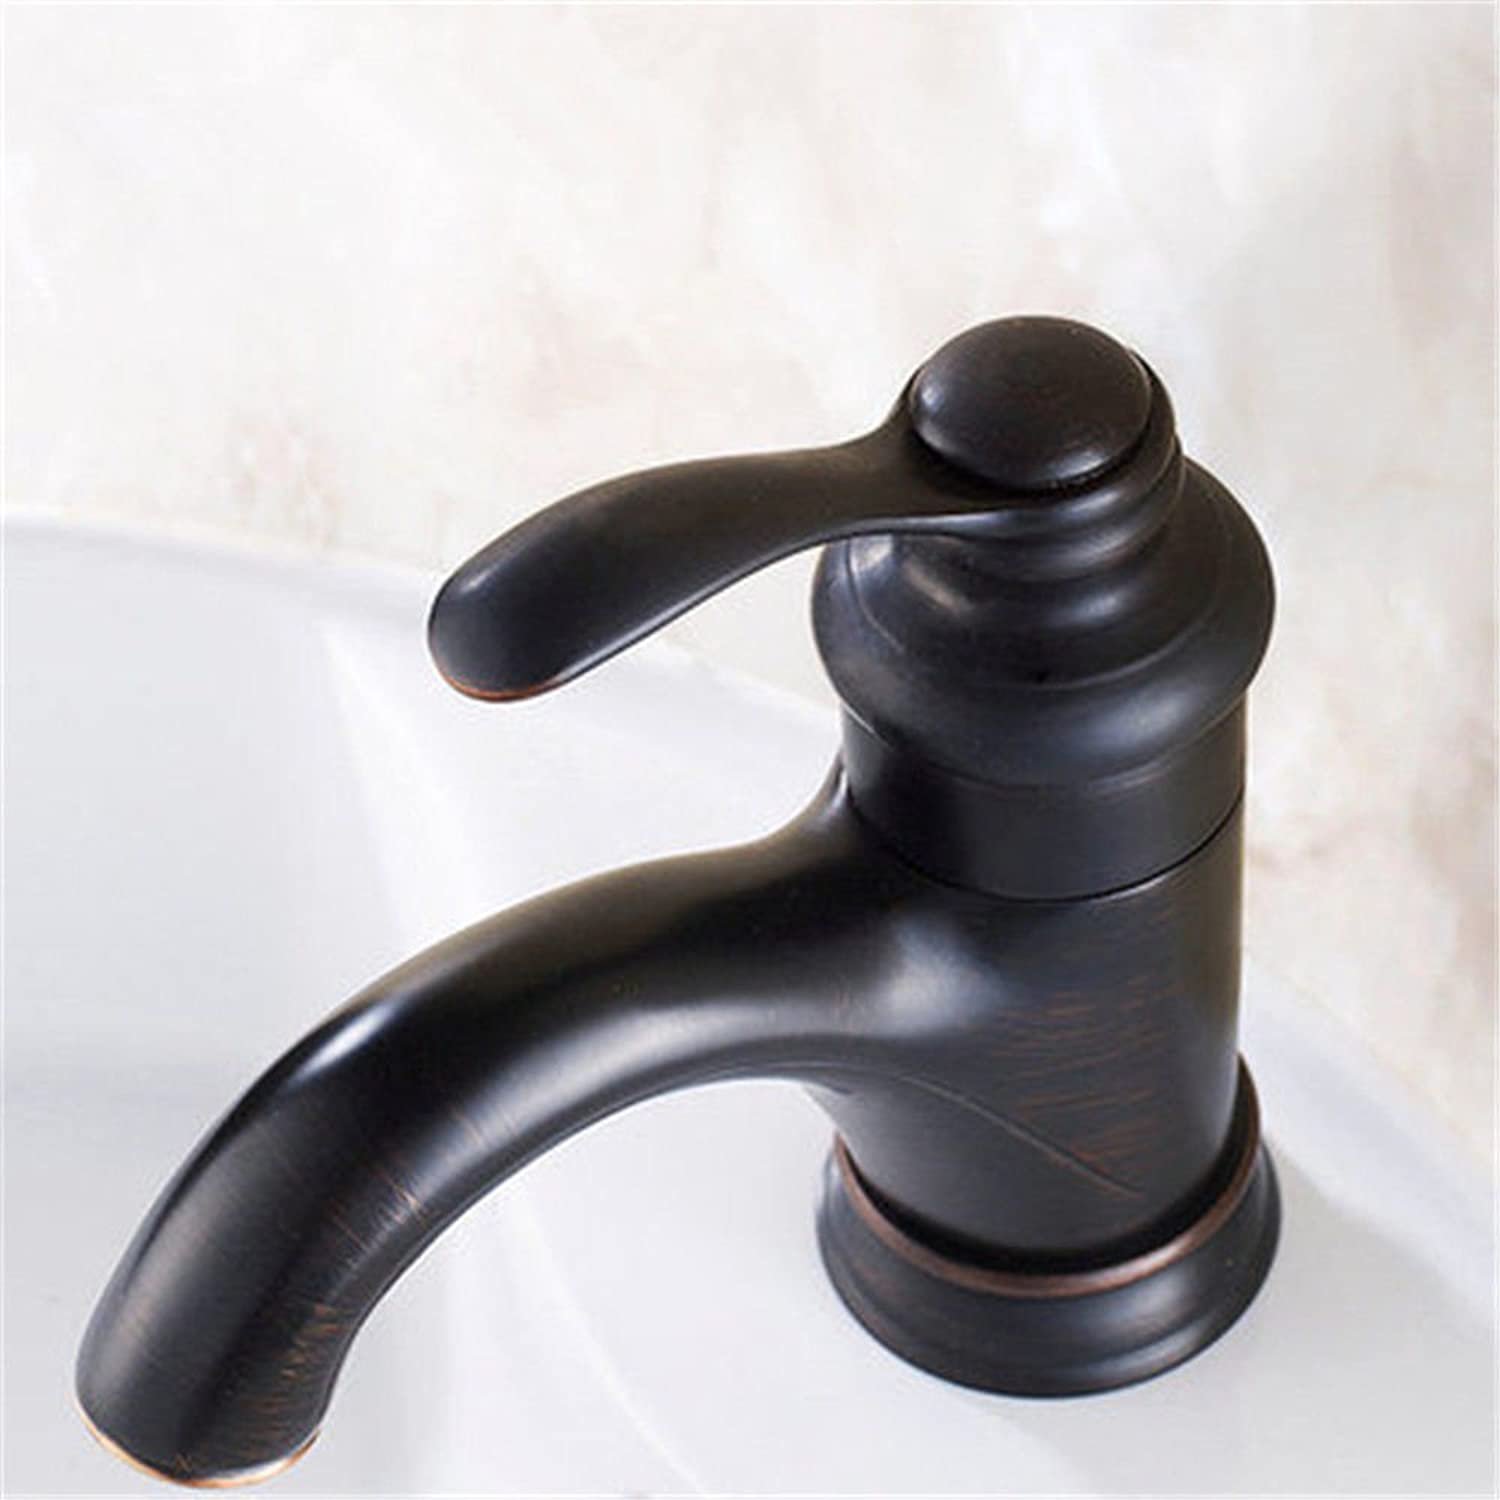 AQMMi Basin Sink Mixer Tap for Lavatory Brass Antique Black Oil Rubbed Bronze Brushed Hot and Cold Water Bathroom Vanity Sink Faucet